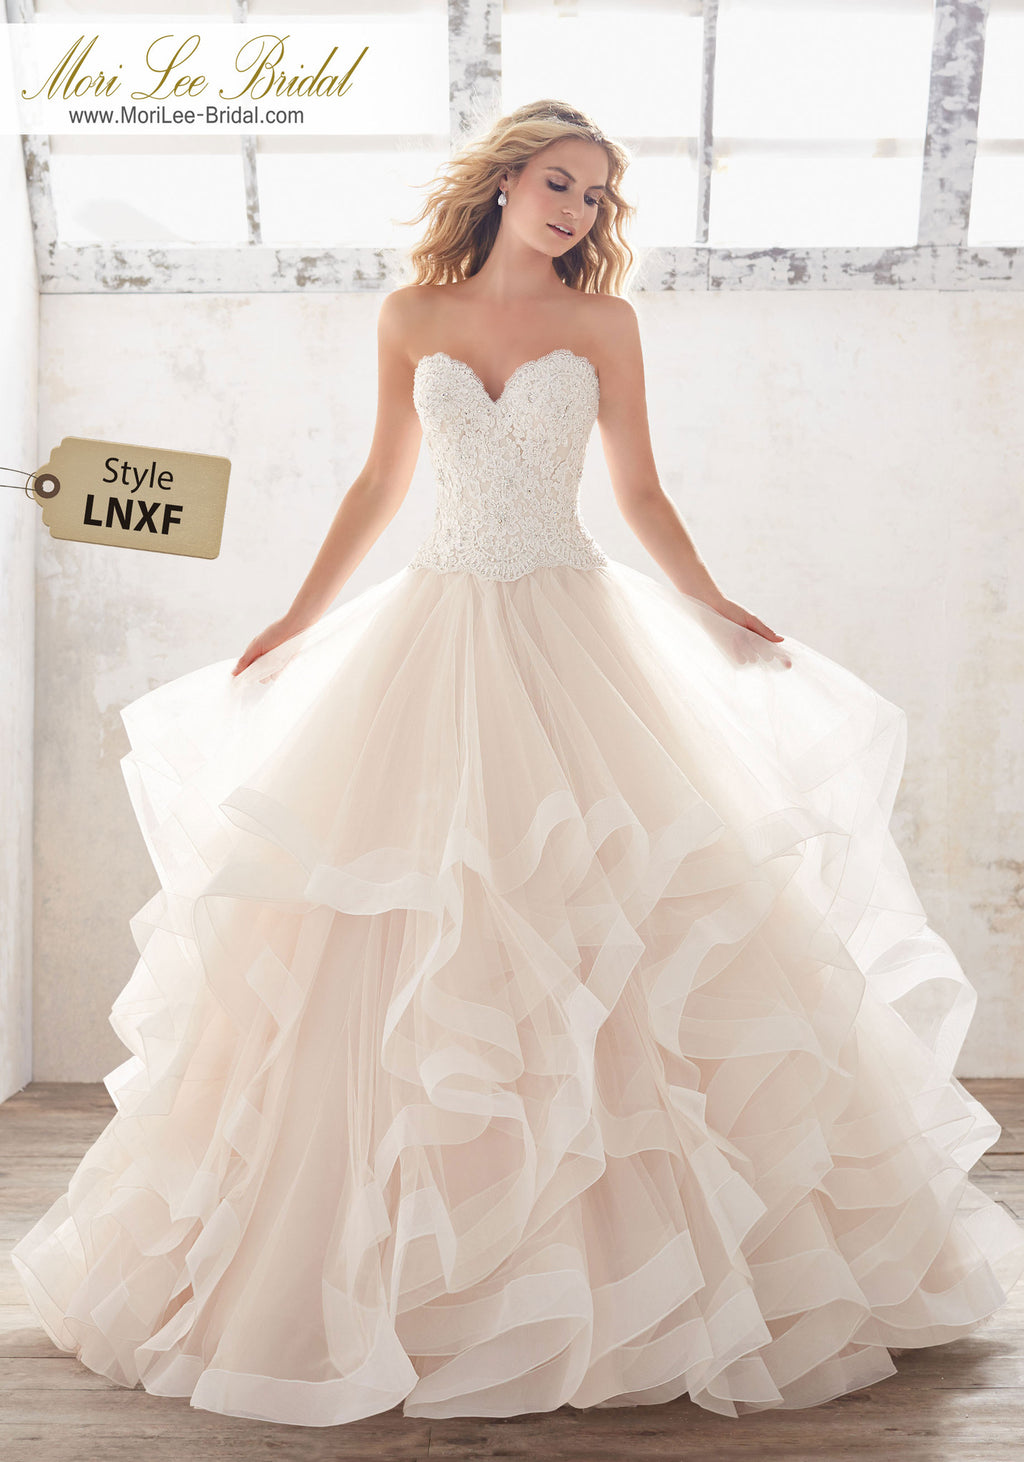 LNXF - Mori Lee Bridal